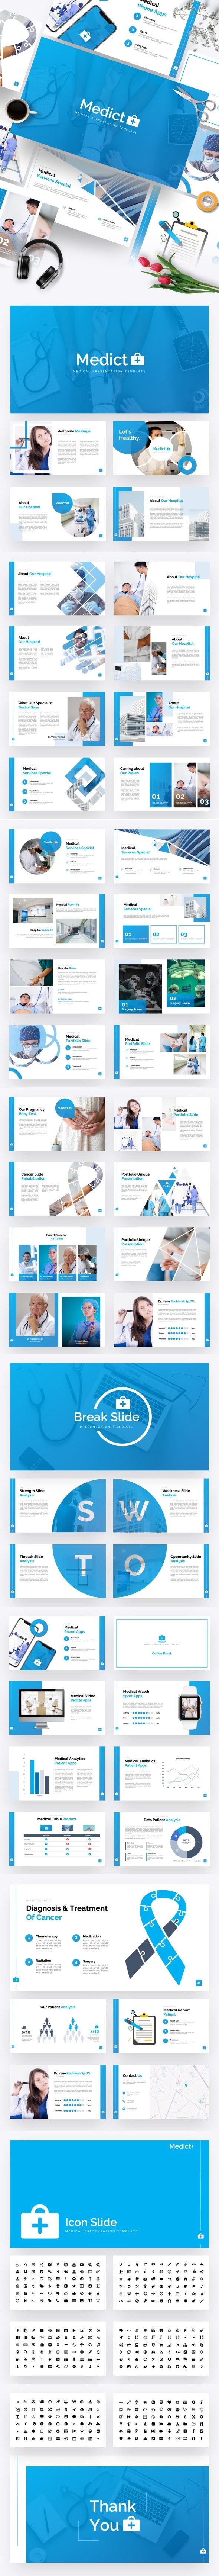 Medict+ Medical Powerpoint Template - Business PowerPoint Templates